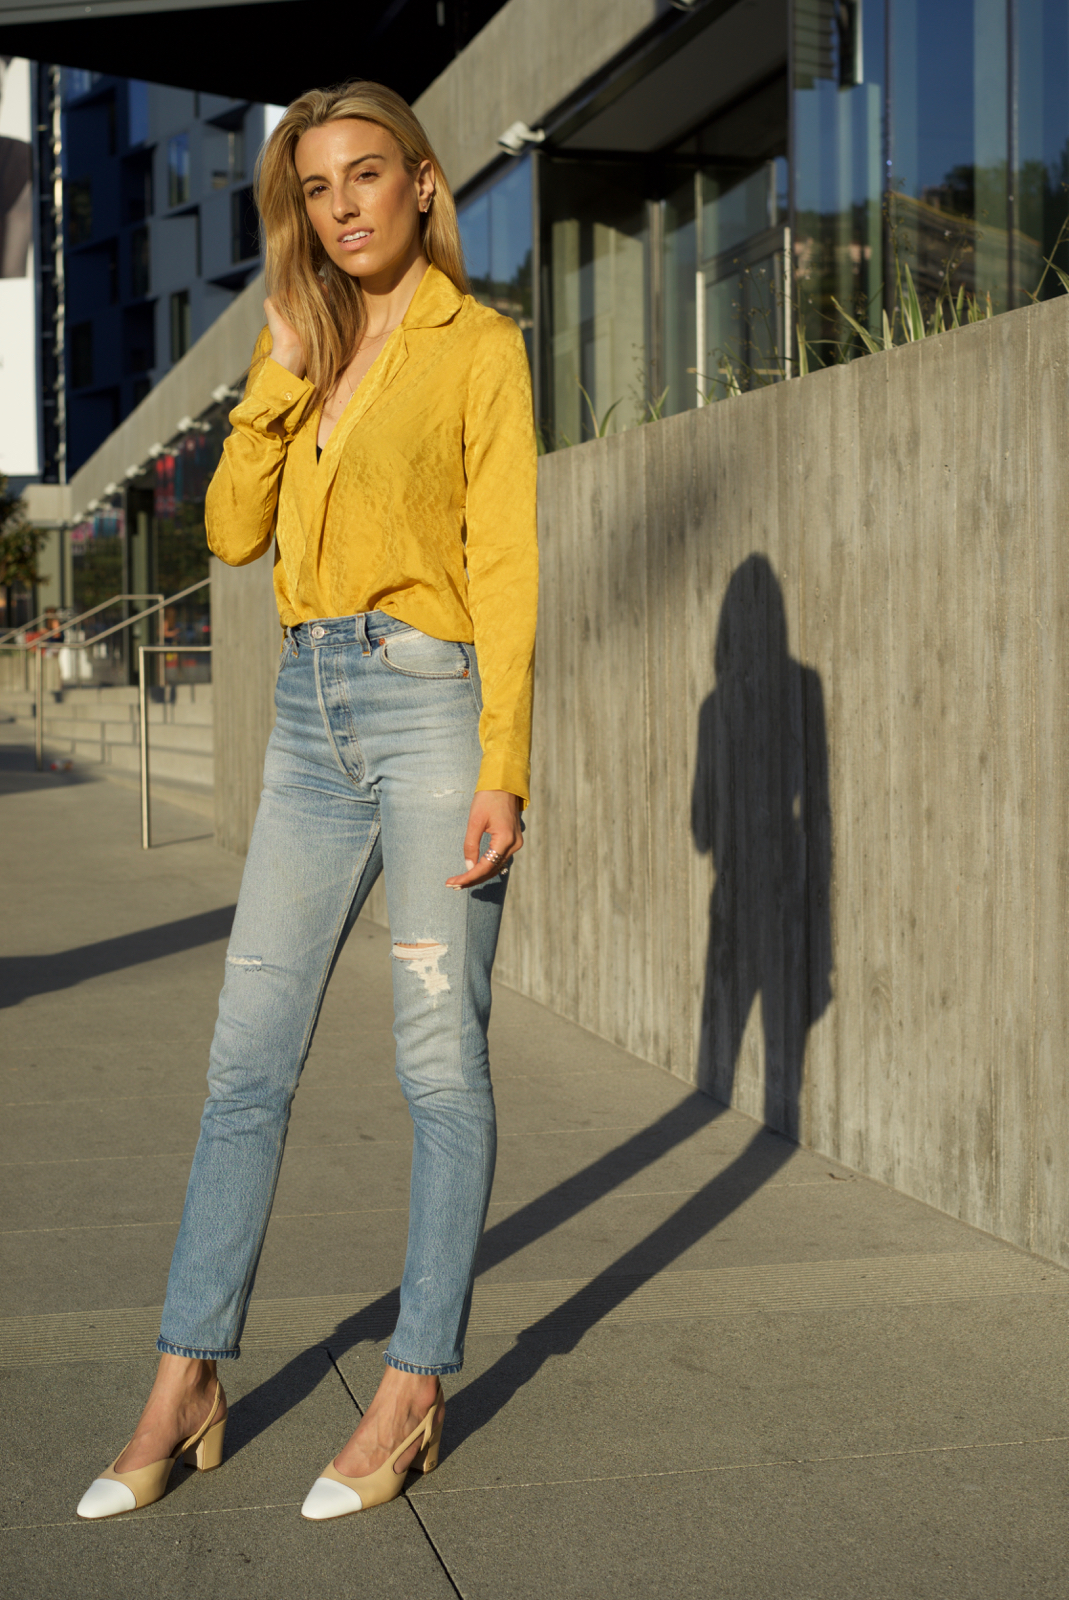 California, Travel, Sunset, Yellow, Spring Trends, Reformation, Golden hour, Chanel Shoes